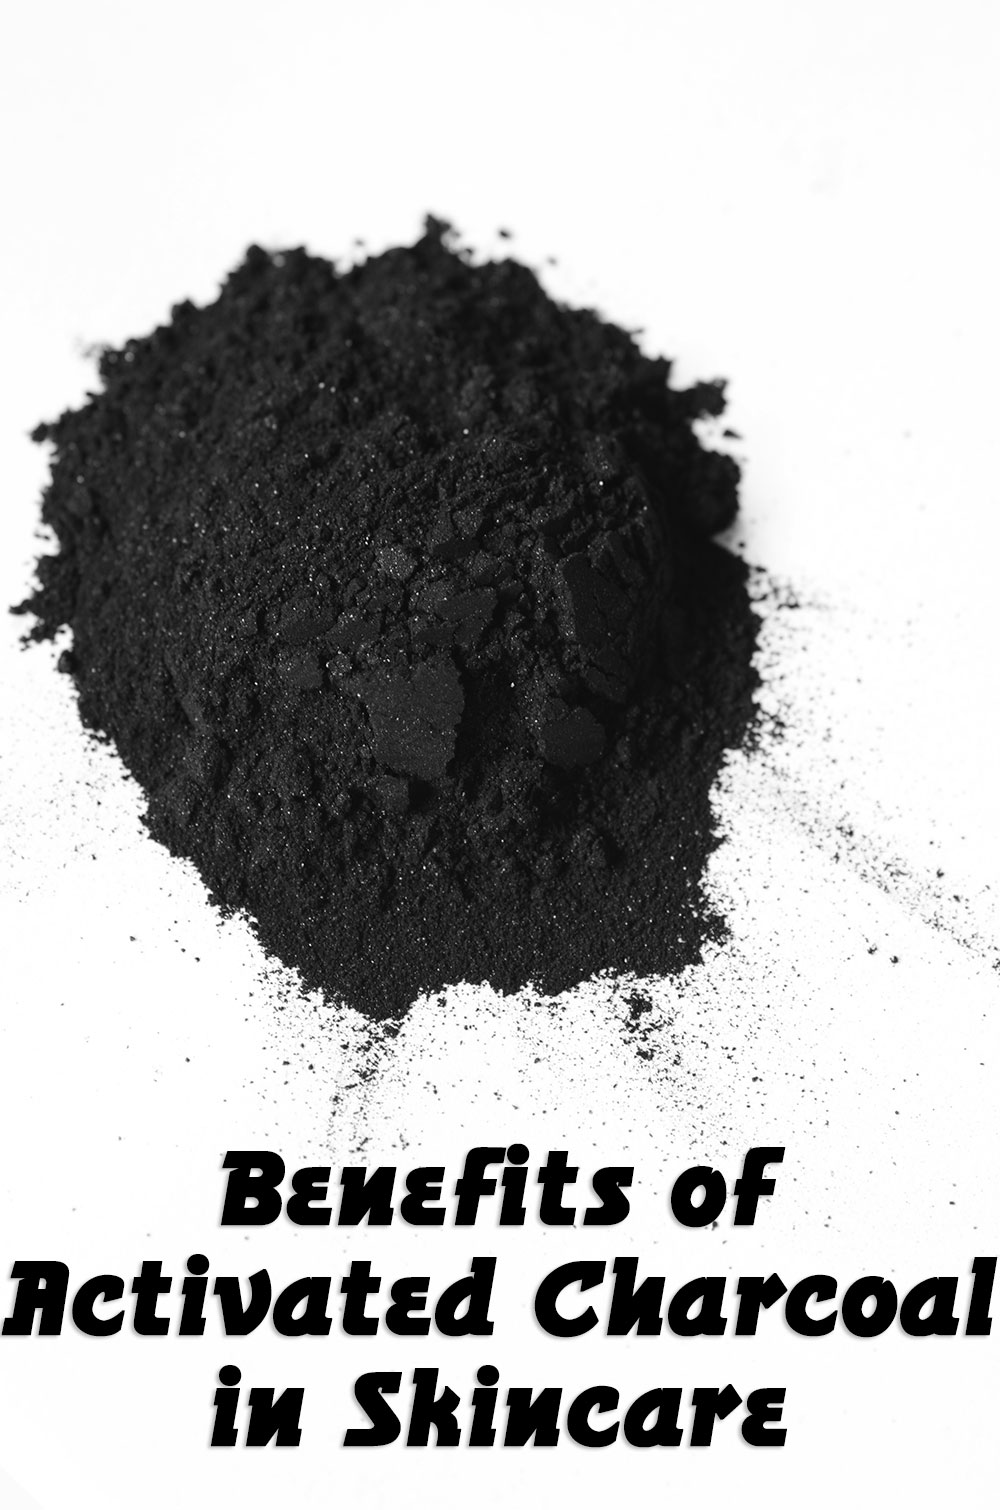 Benefits of Activated Charcoal in Skincare + My favorite non-toxic, natural finds // TheCuriousCoconut.com